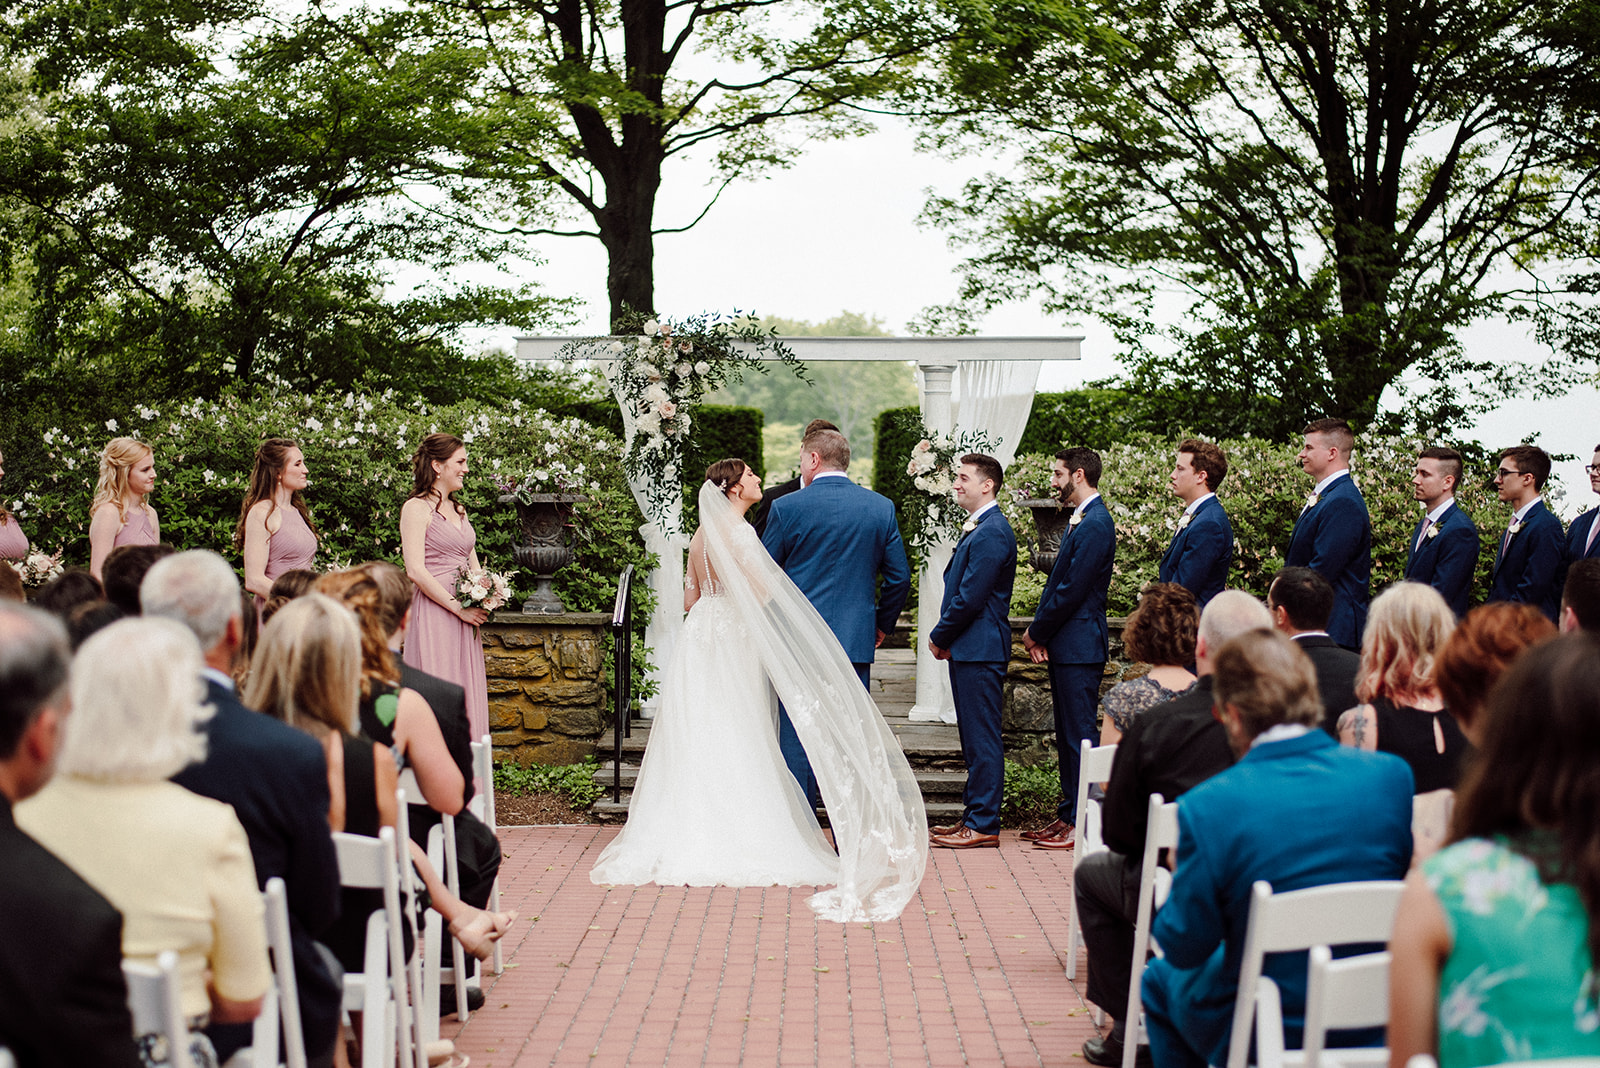 Drumore Estate wedding ceremony in the formal gardens.